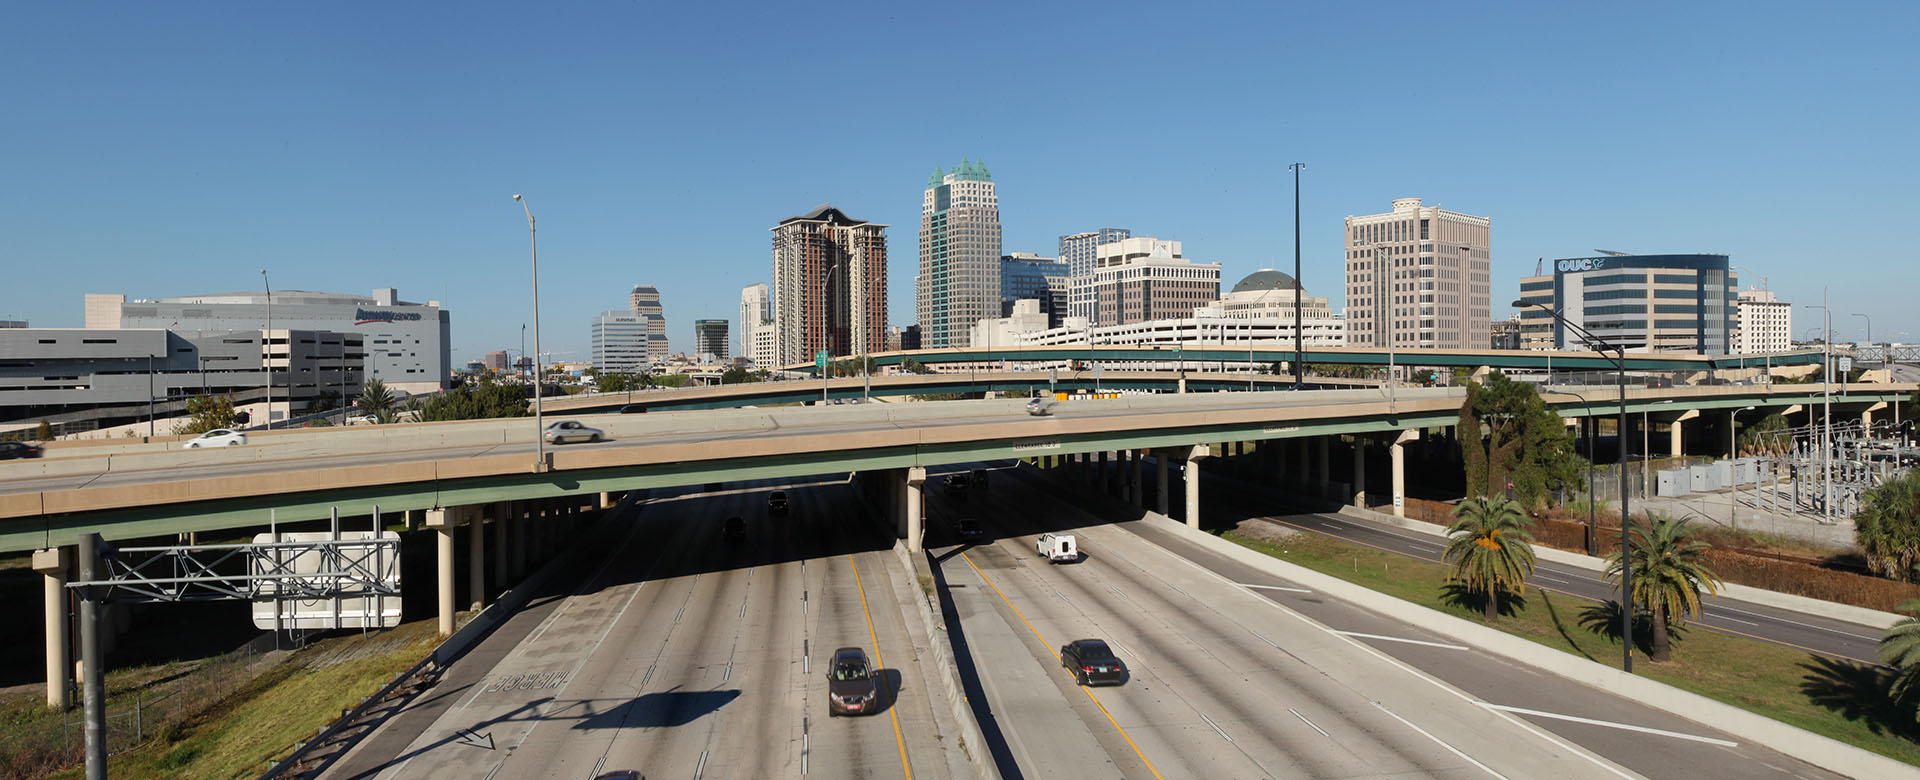 Central Florida Expressway toll road 408 overpass crossing Interstate 4 in downtown Orlando